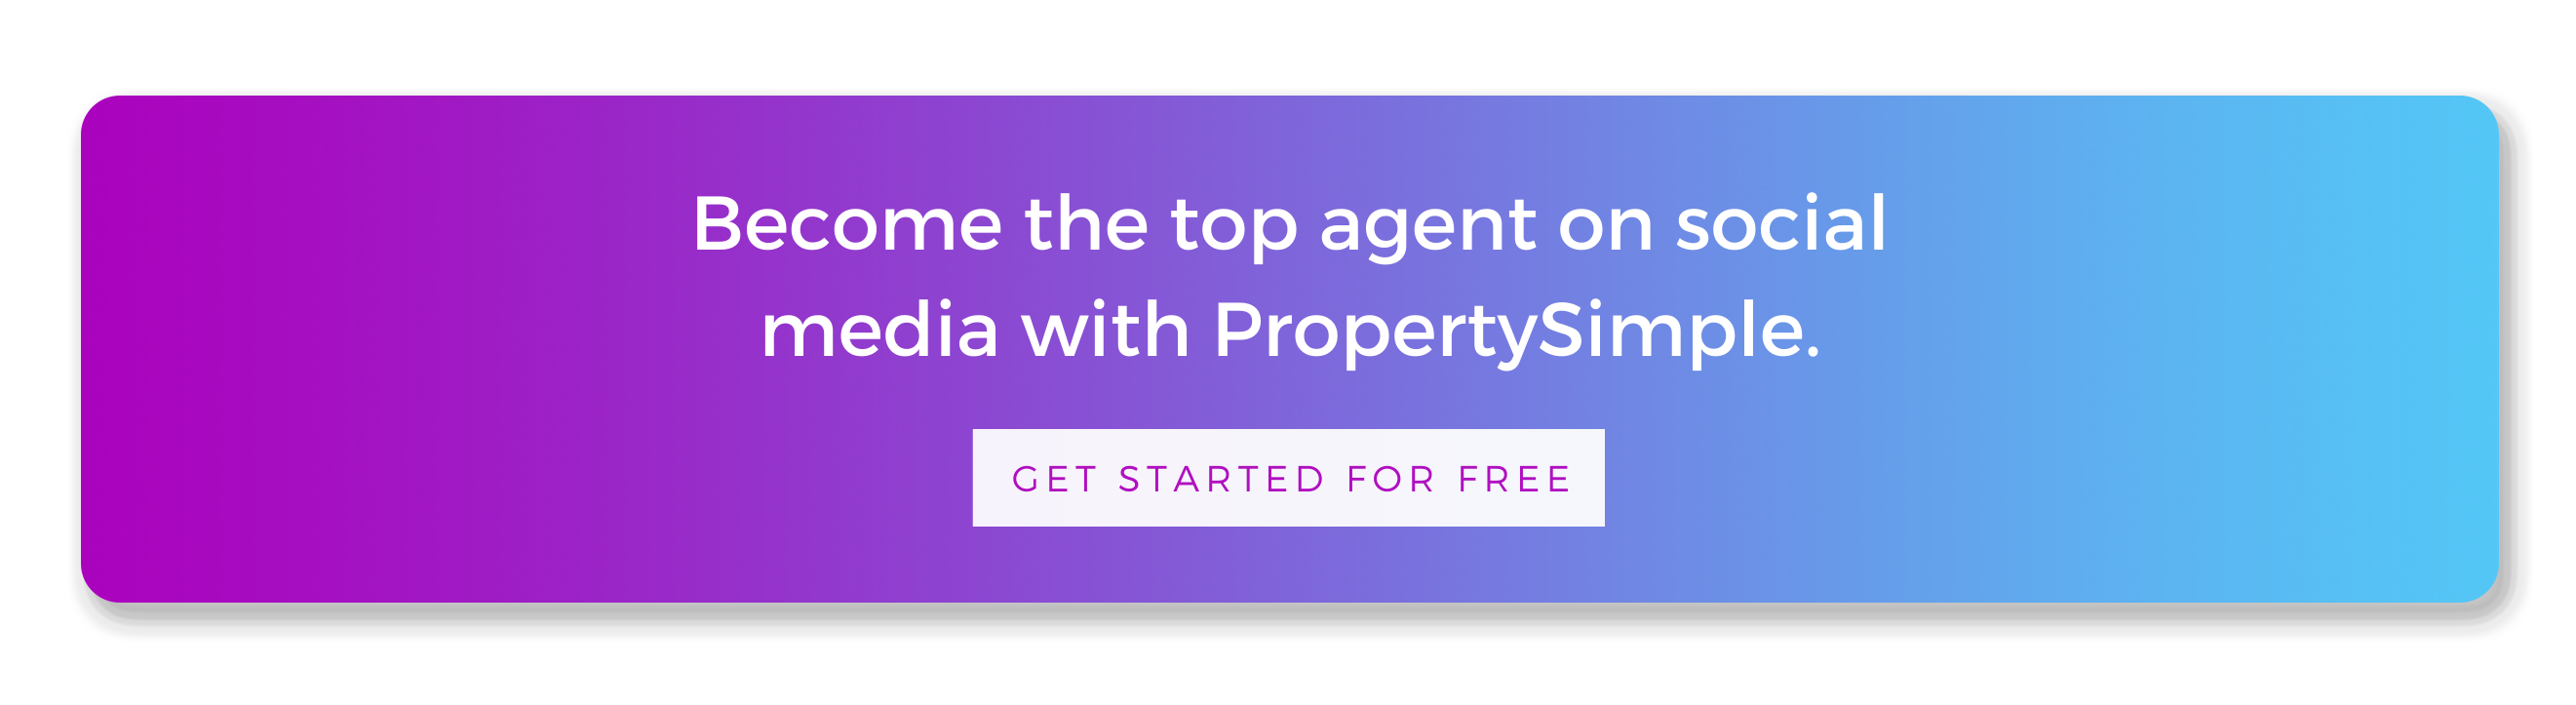 click here to become the top agent on social media and try PropertySimple for 7 days free